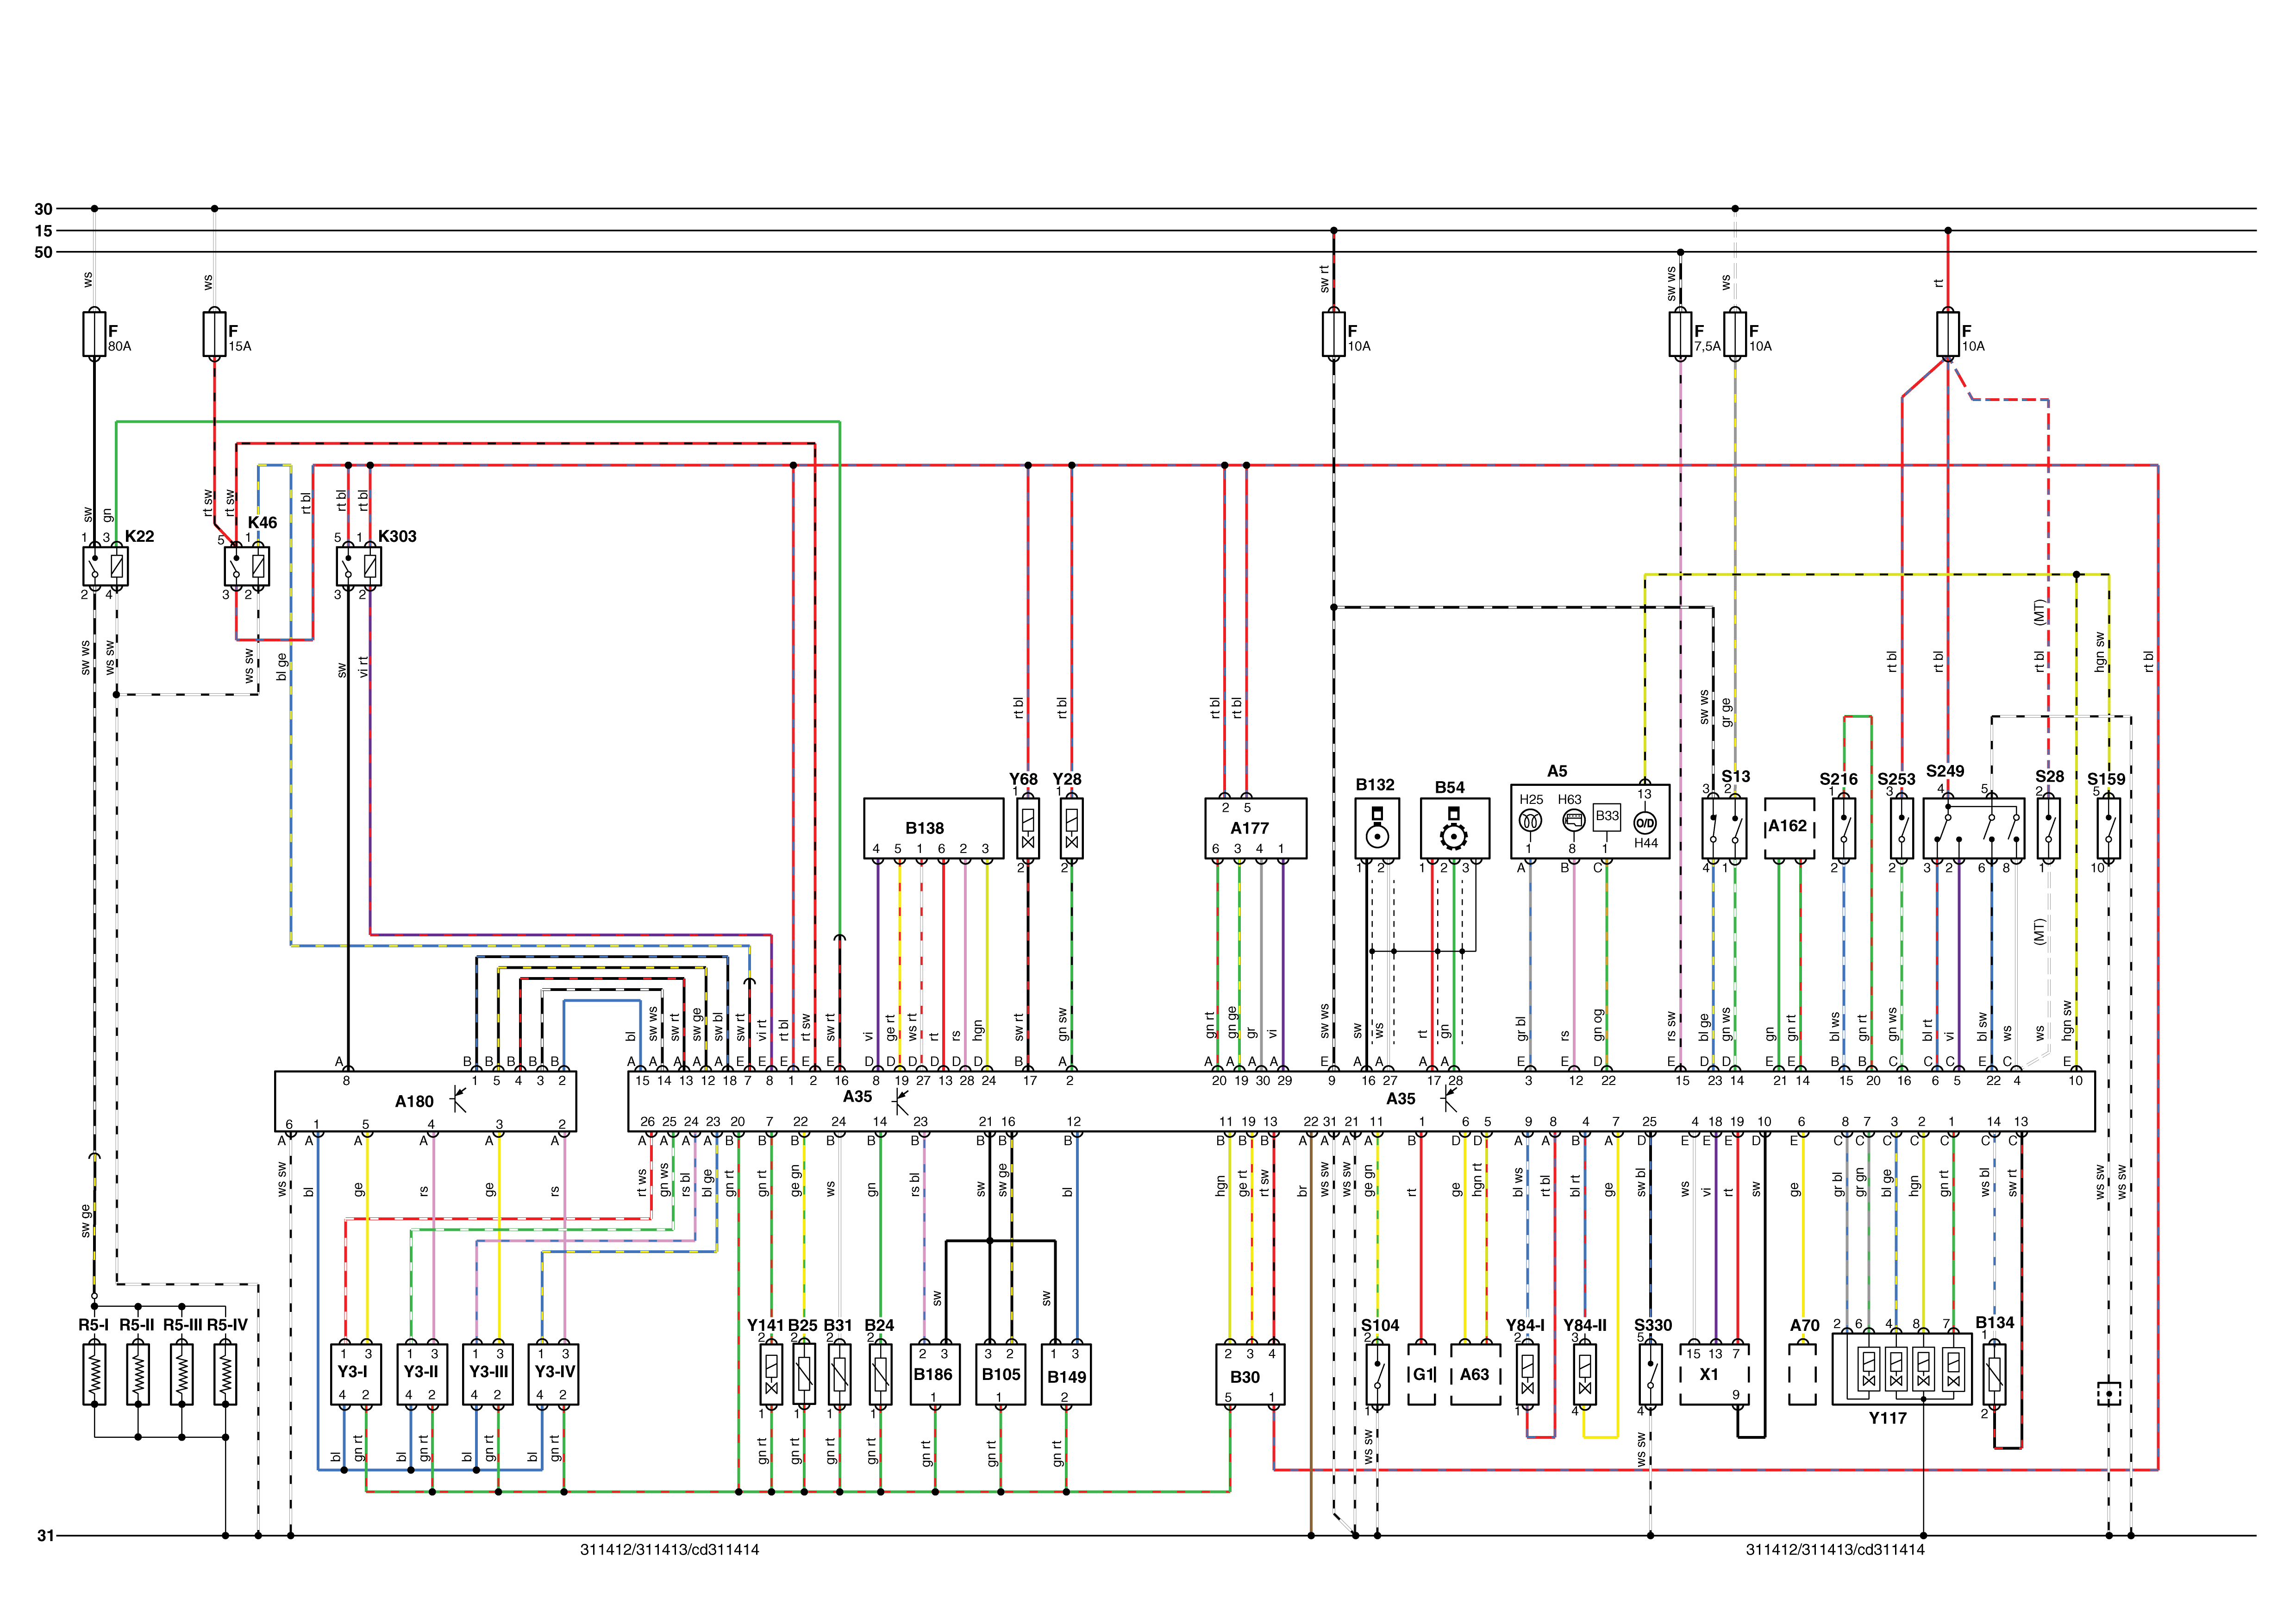 22re igniter wiring diagram vehicle charging system 83 toyota pickup get free image about